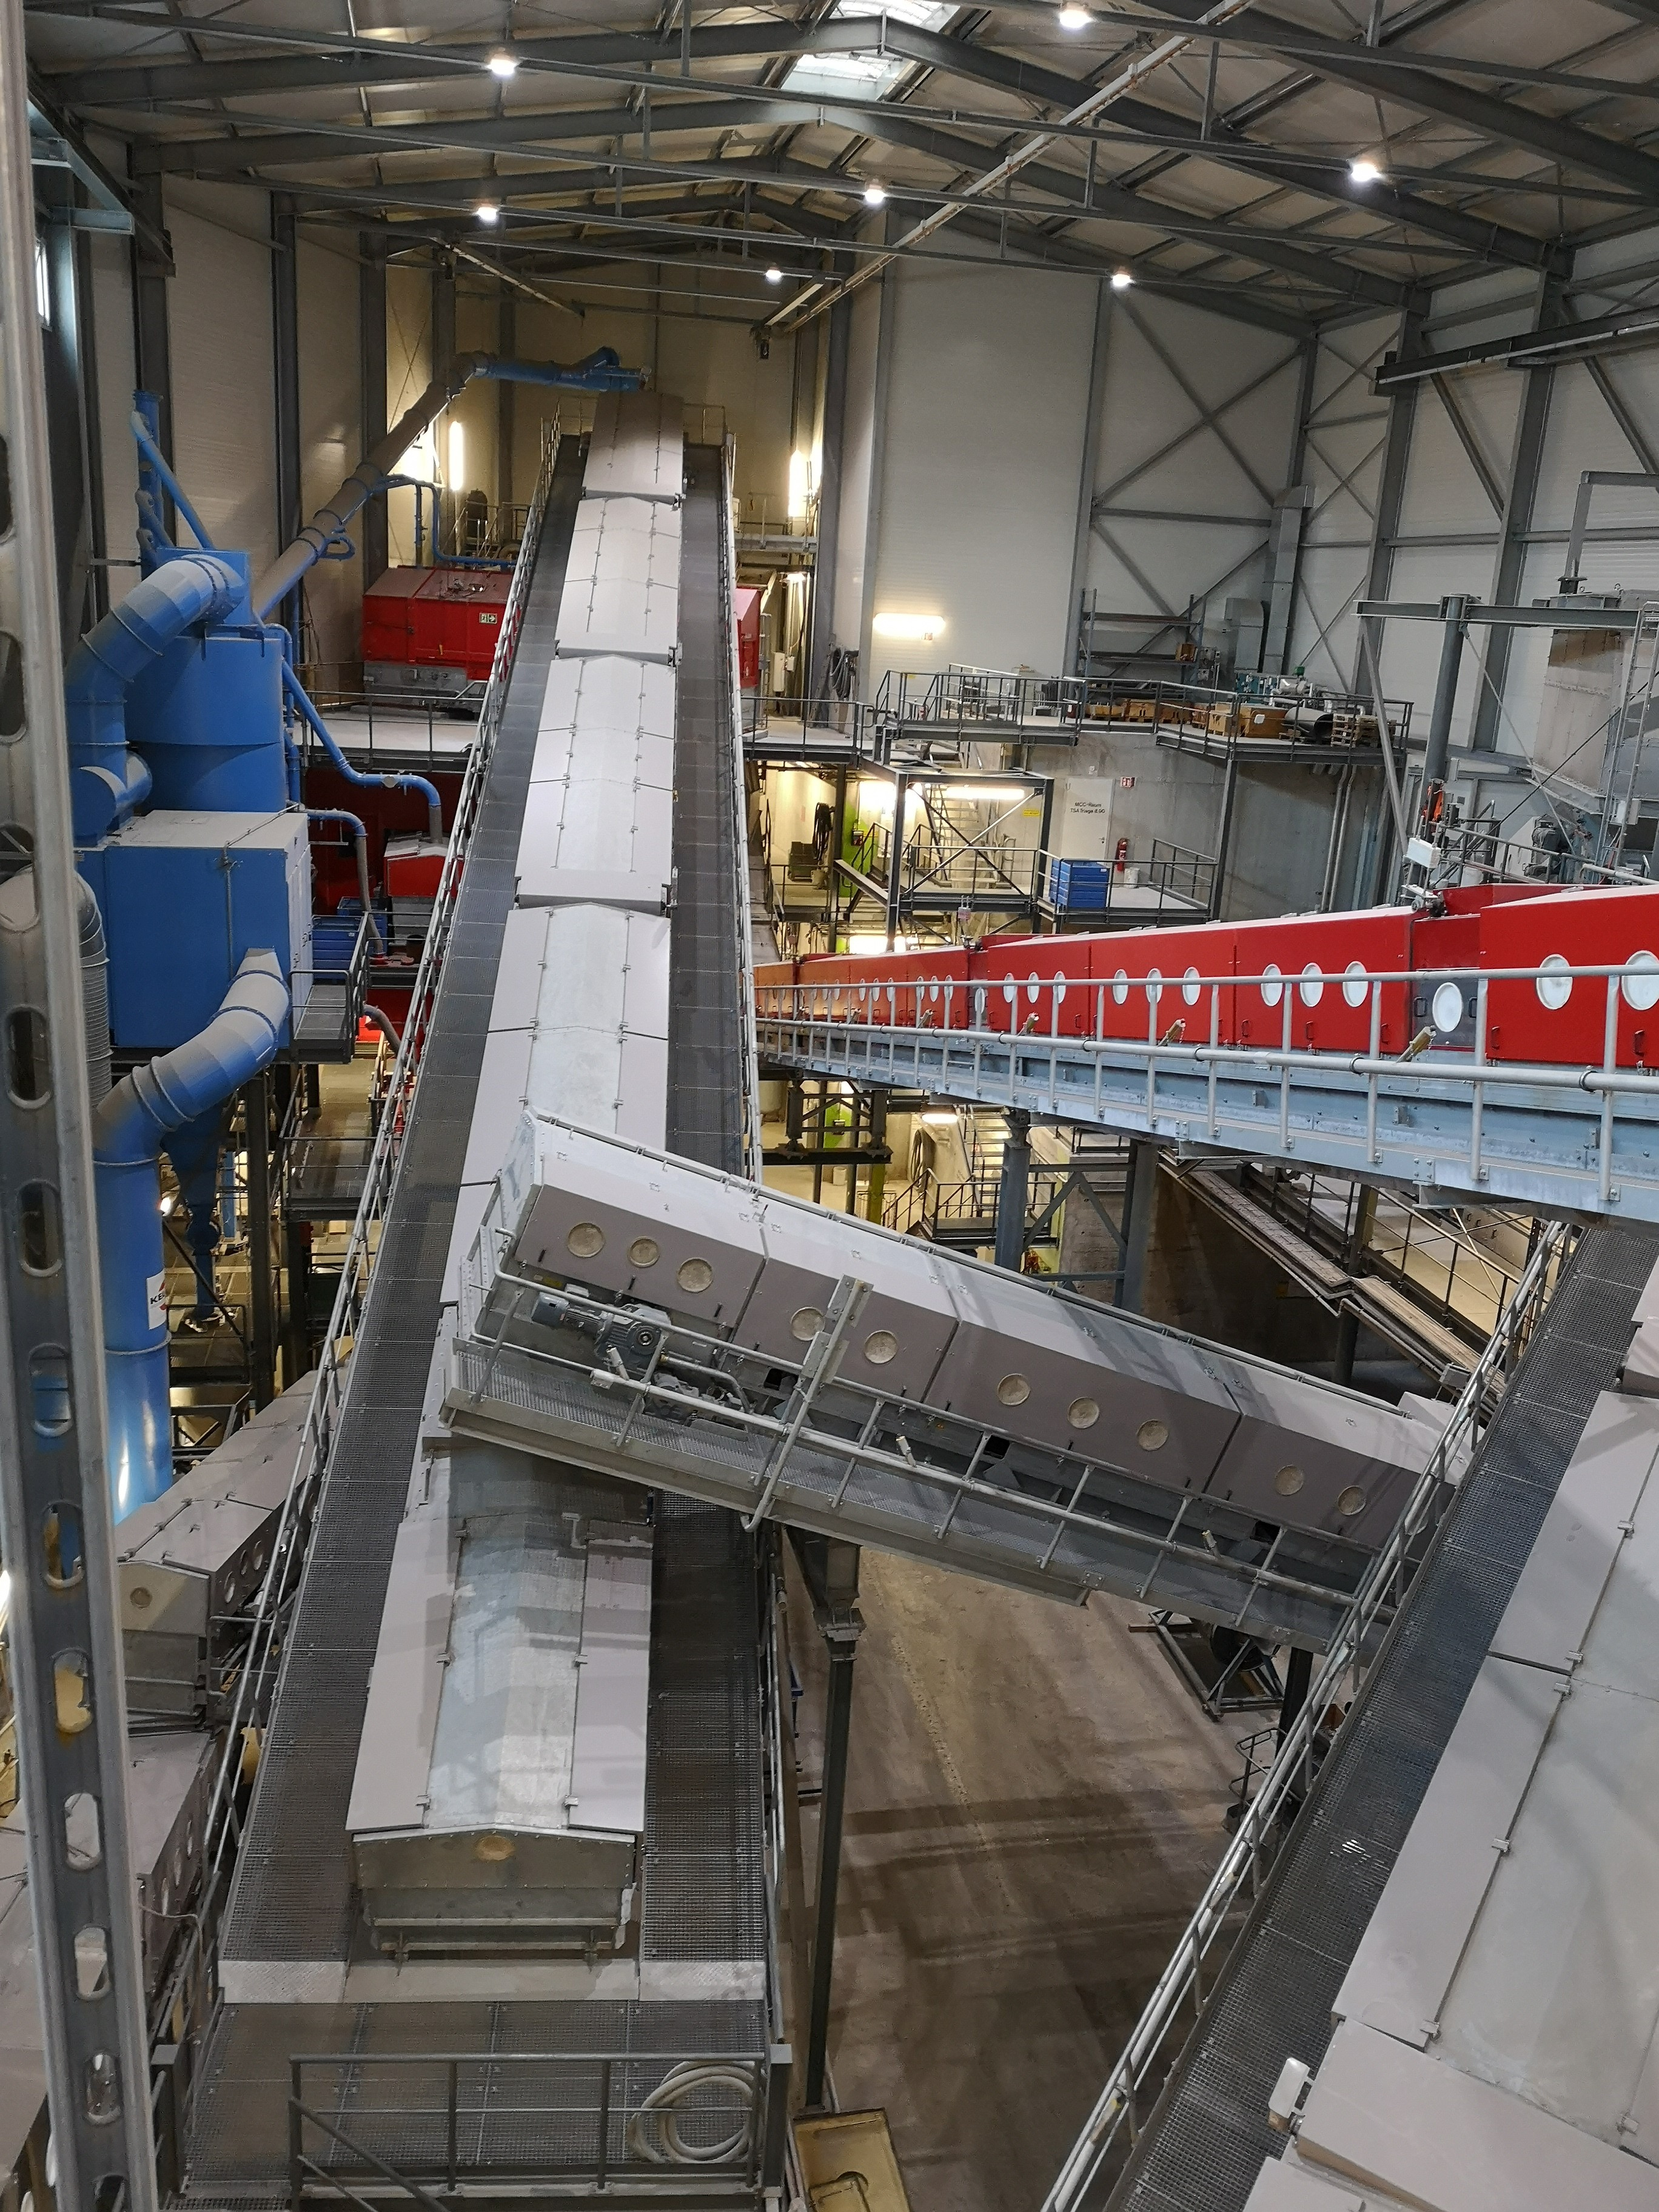 Then it leads on tape to the dry slag plant of zav recycling ag. After the step that i mentioned above, it leads to other different steps and then it goes to the handsorting and breaking and separating machines (Förderband zur Handsortierung)